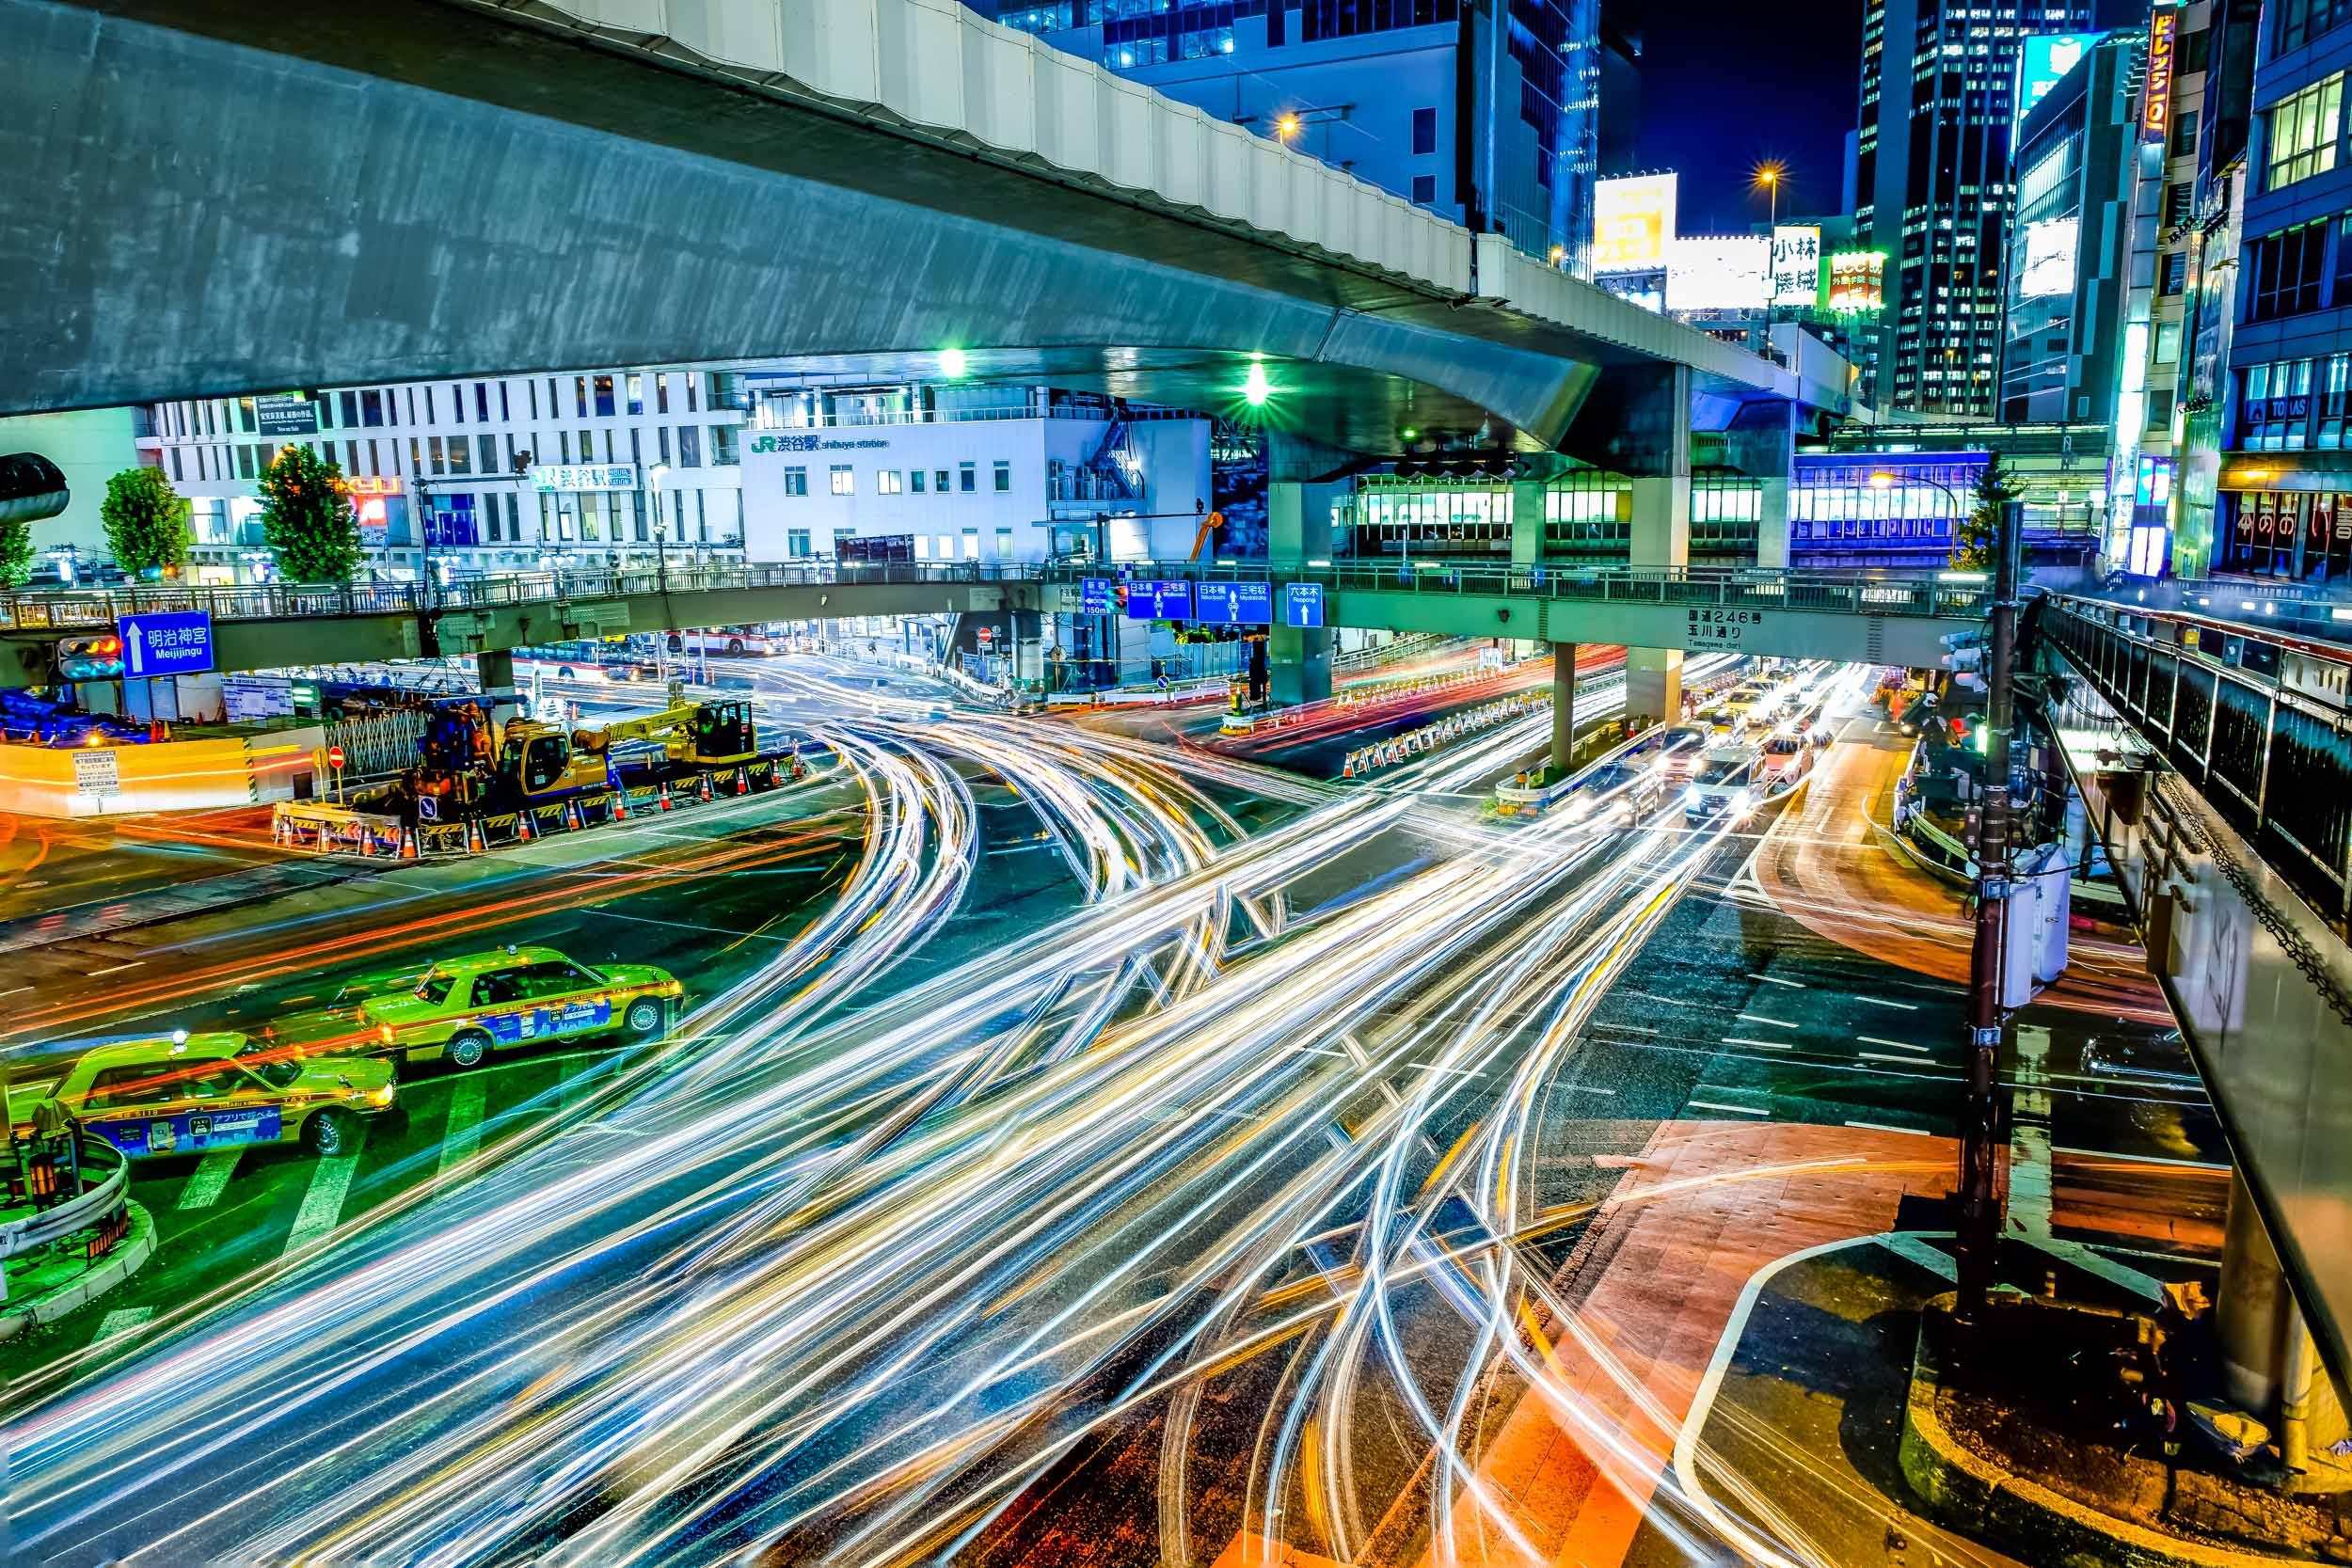 This intersection in Shibuya, in my opinion, is a great place to do some long exposure photography